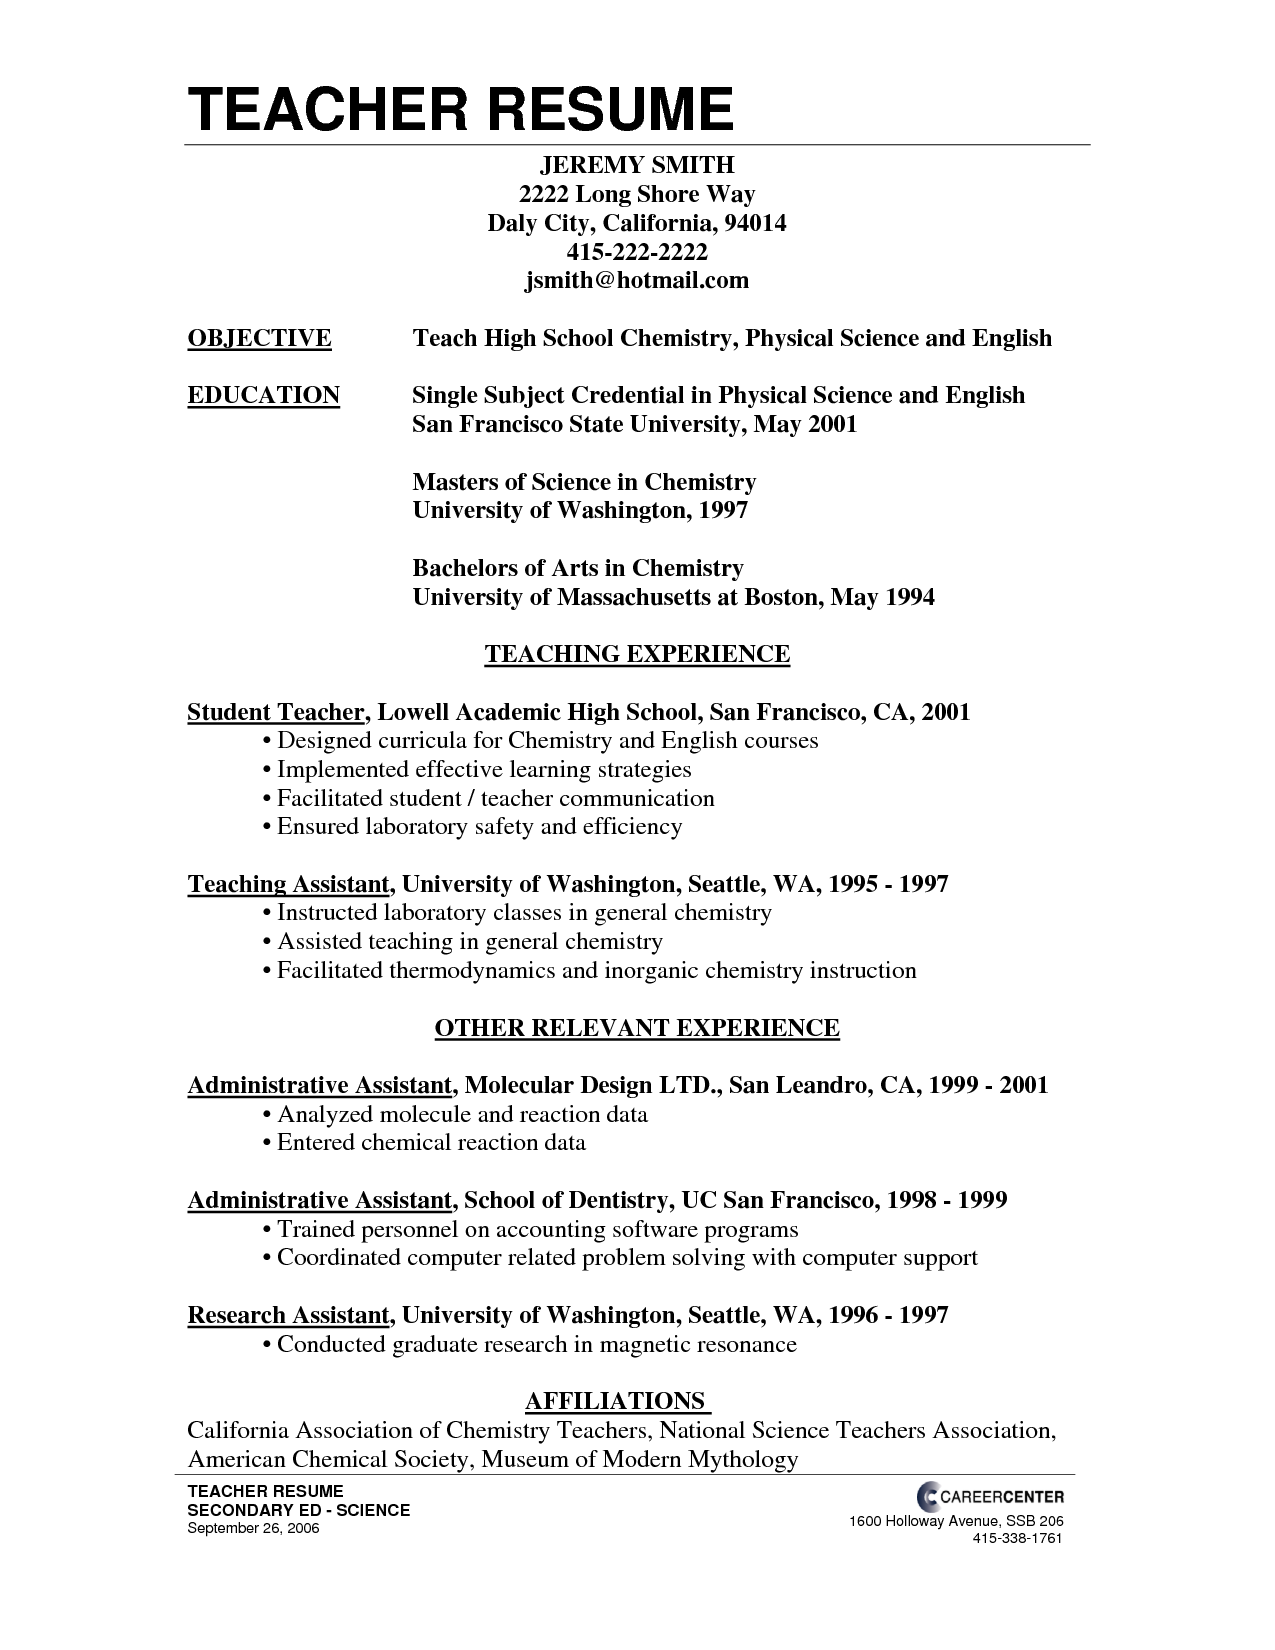 Teachers Cv HttpWwwTeachersResumesComAu Teachers